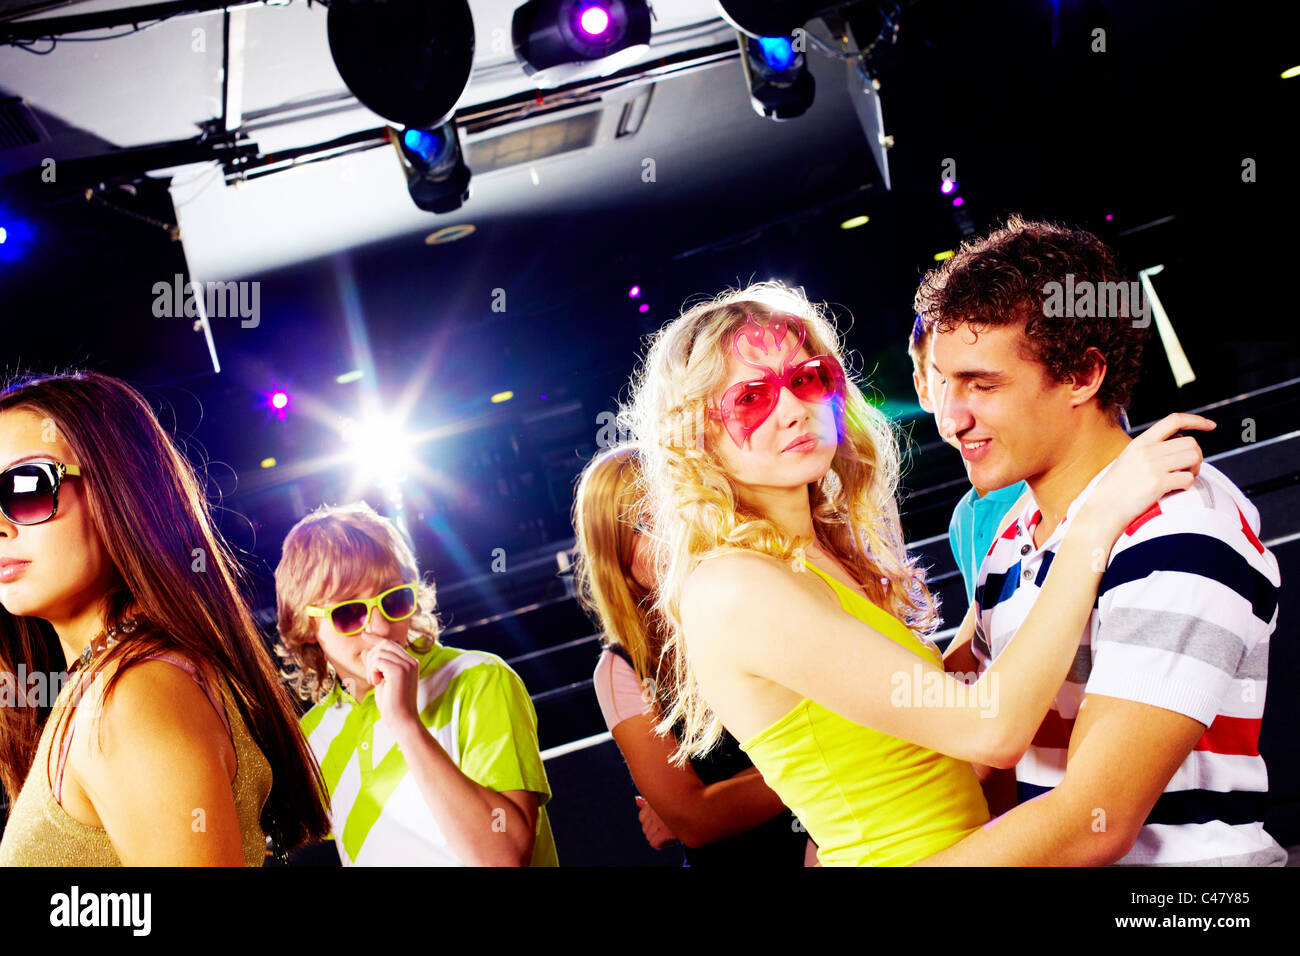 Portrait of happy glamorous friends during party in a night club - Stock Image